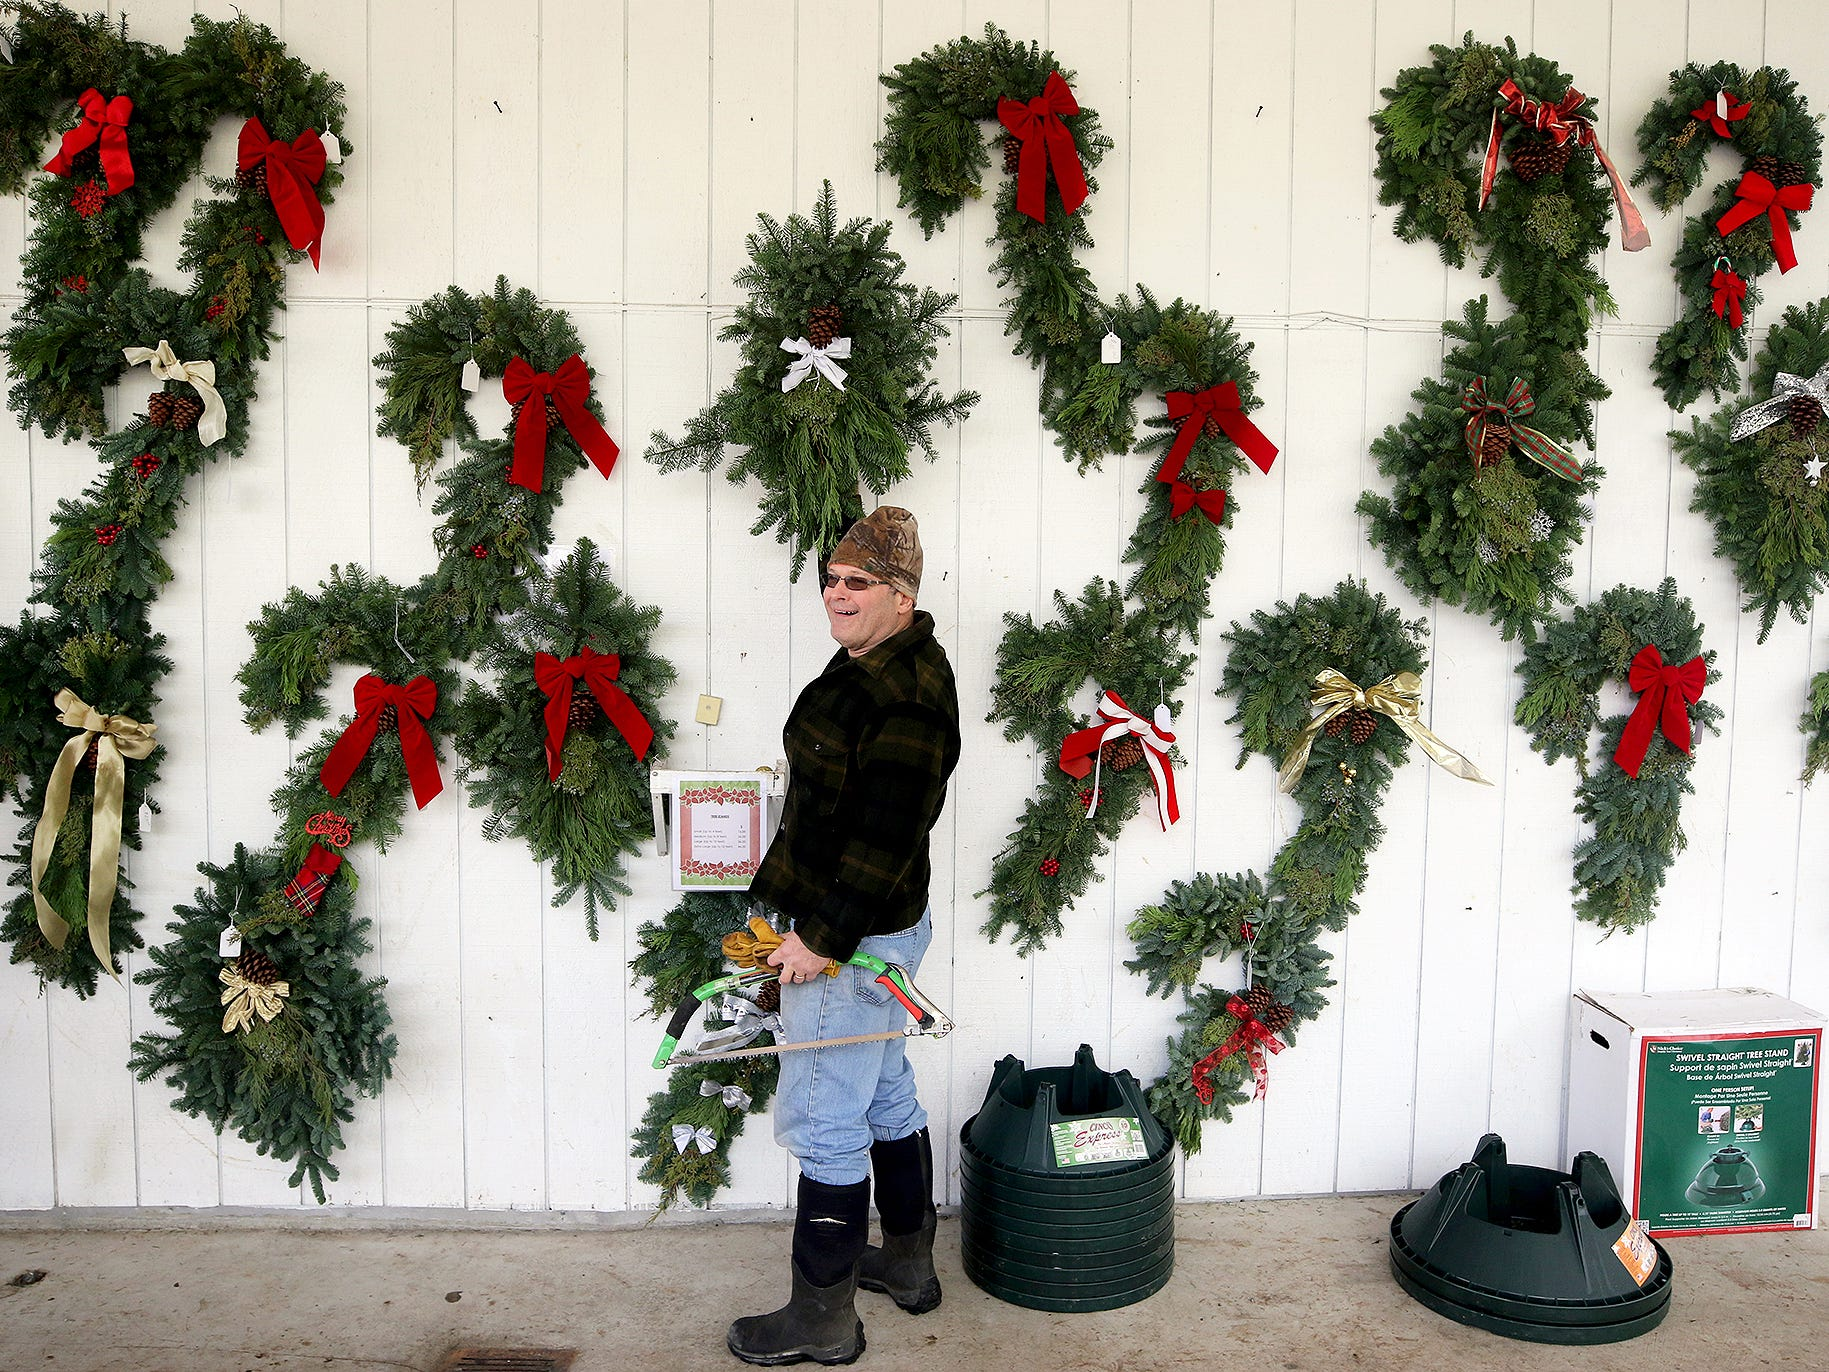 D. James Little of the All Creatures Animal Hospital in Gorst chooses hand made wreathes at the Bacon's Christmas Tree Farm on West Belfair Valley Rd, between Bremerton and Belfair on Monday, December, 10, 2018. He was getting the wreaths for his office Christmas party and to send some to family back east. The tree farm is closing early this year as Monday was the last day.